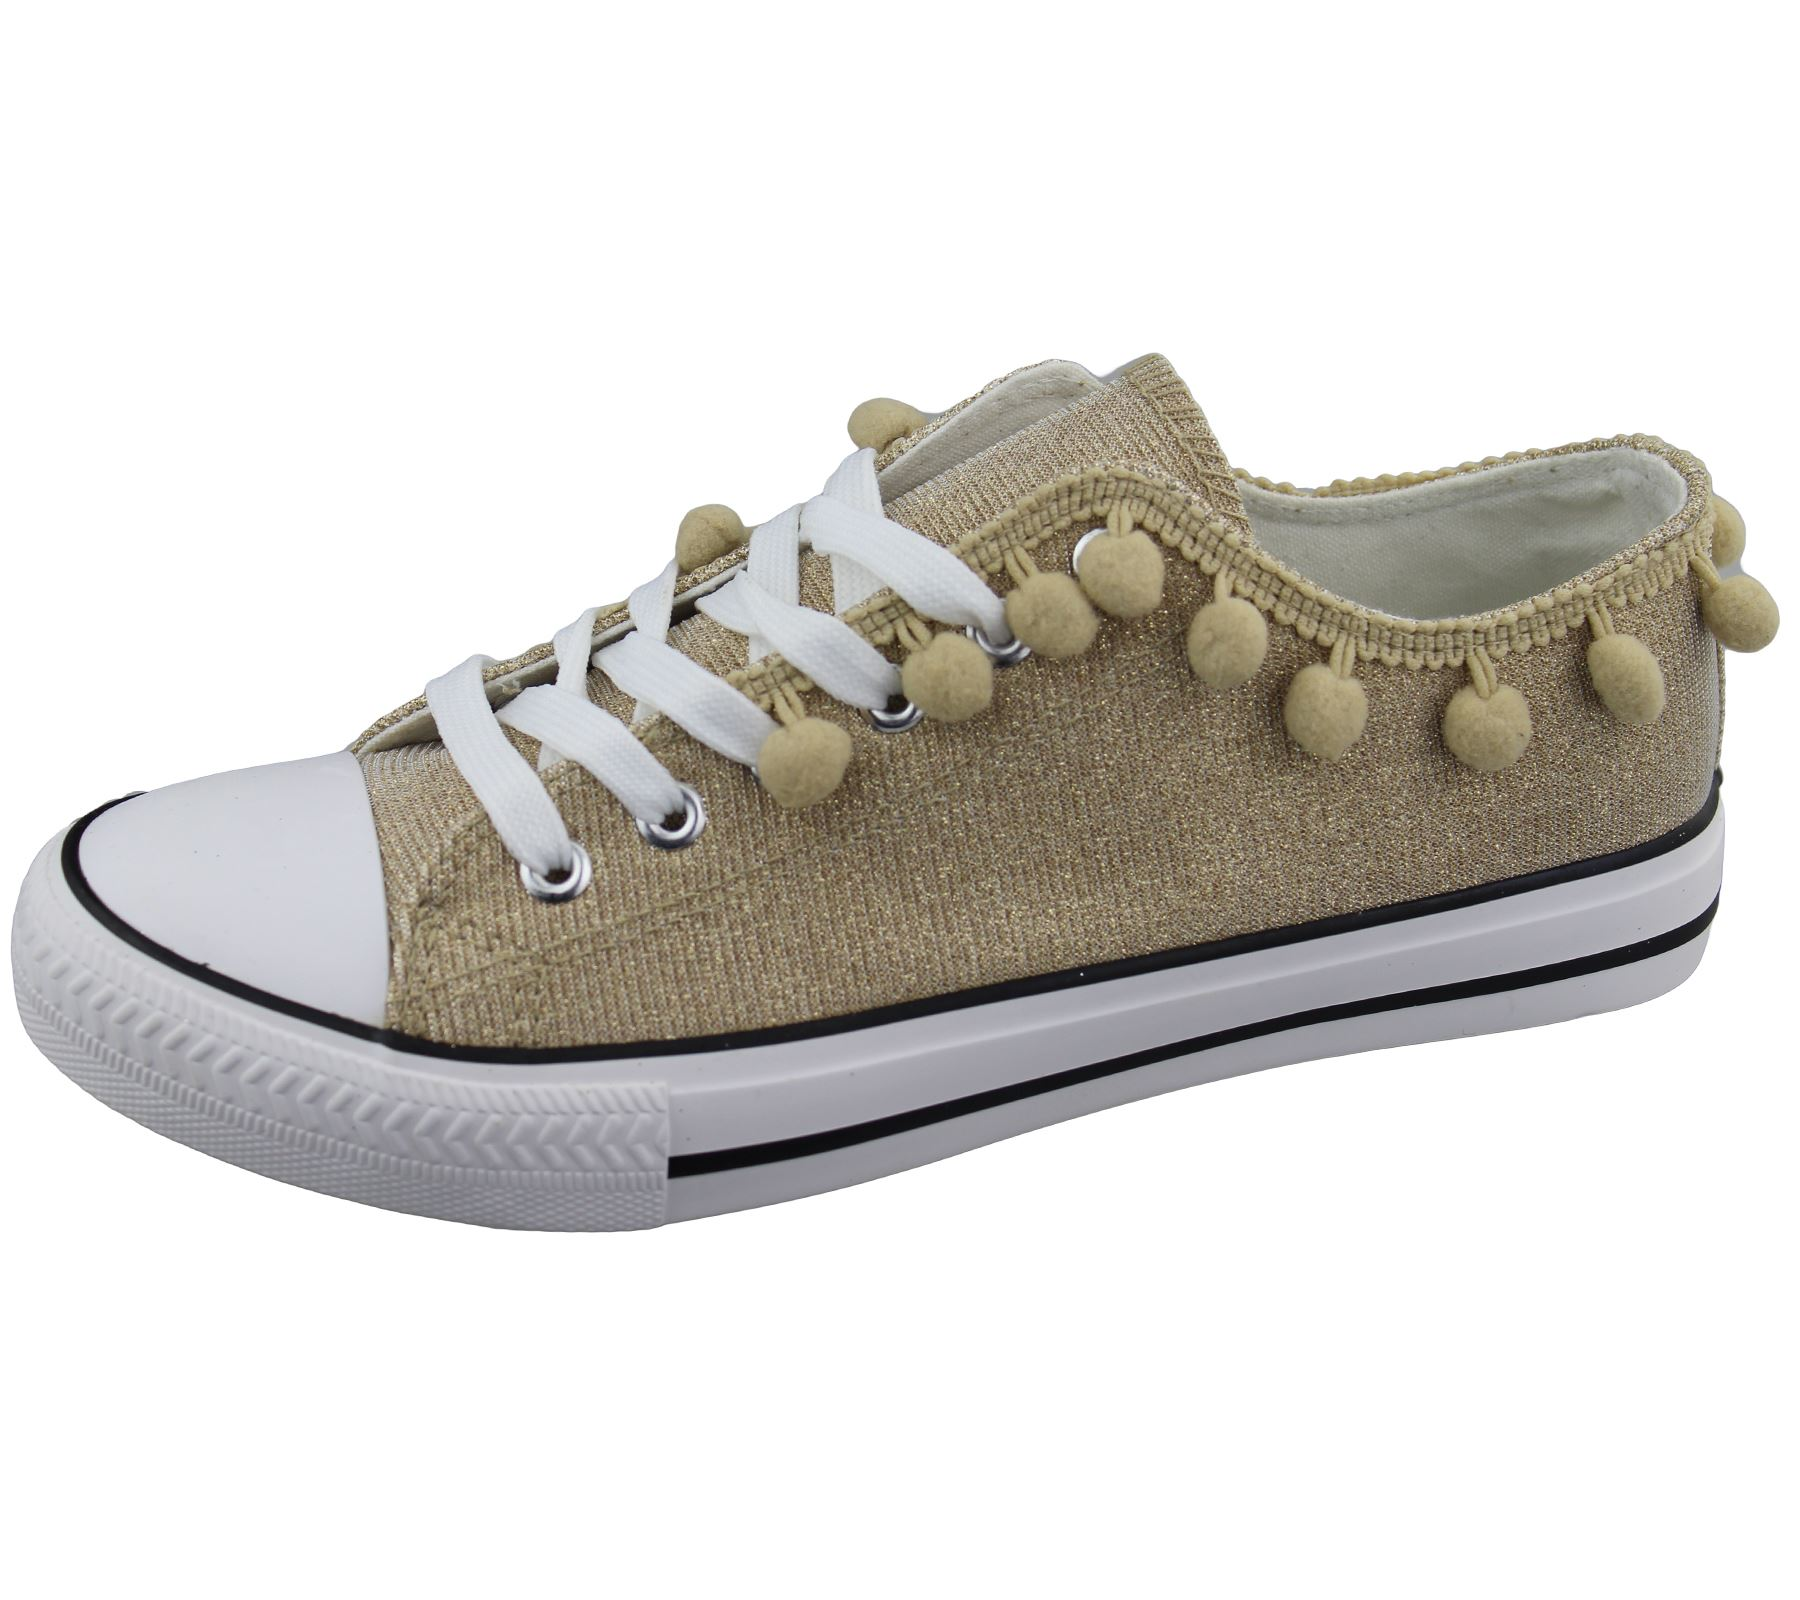 Womens-Sneakers-Flat-Pumps-Ladies-Glittered-Summer-Plimsole-Canvas-Shoes thumbnail 17